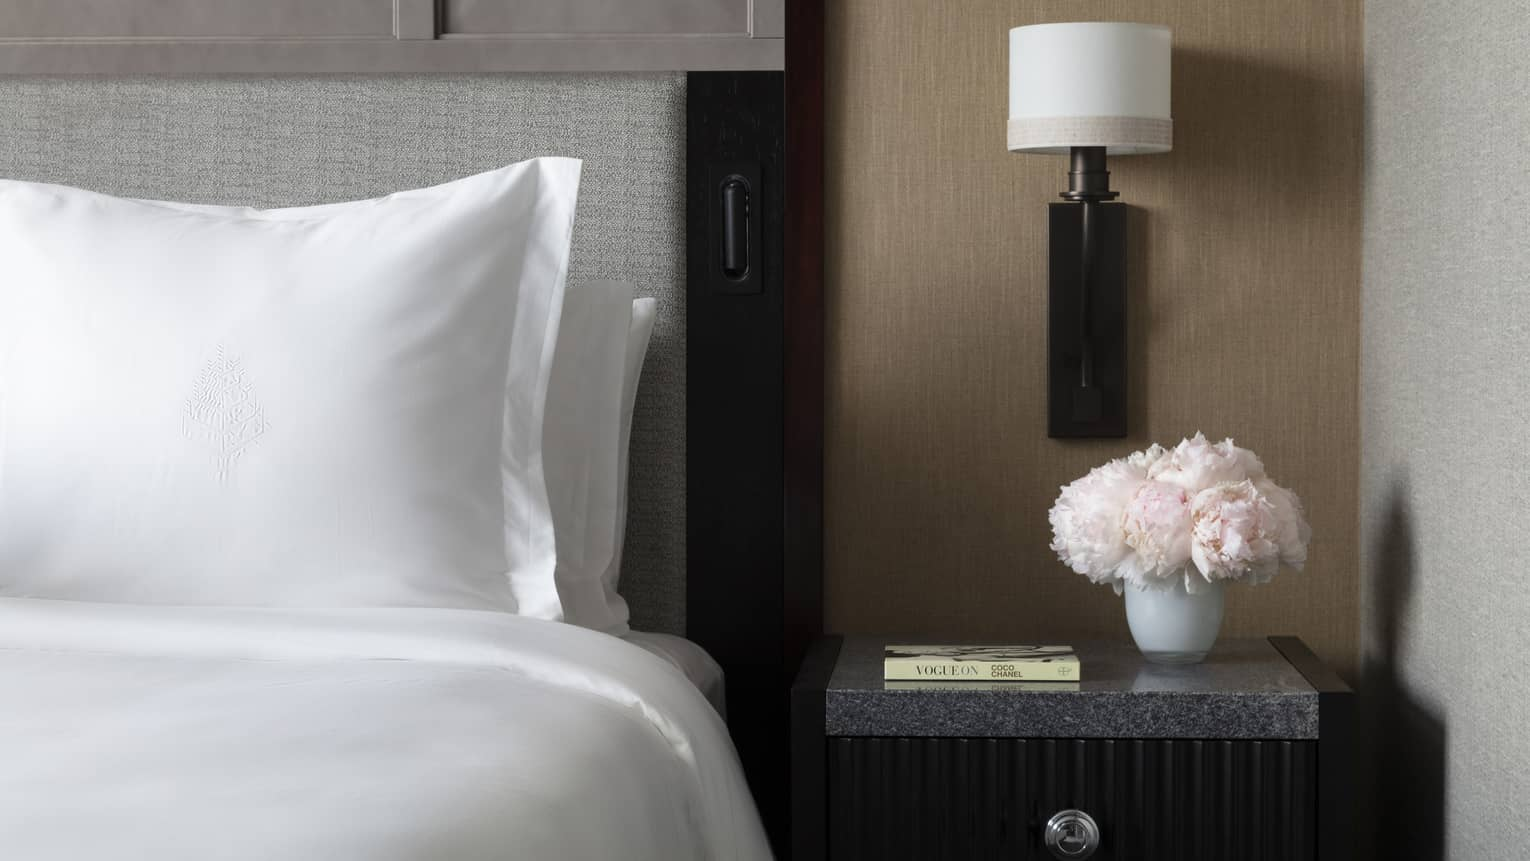 Sleek bedside table next to a crisp white Four Seasons bed